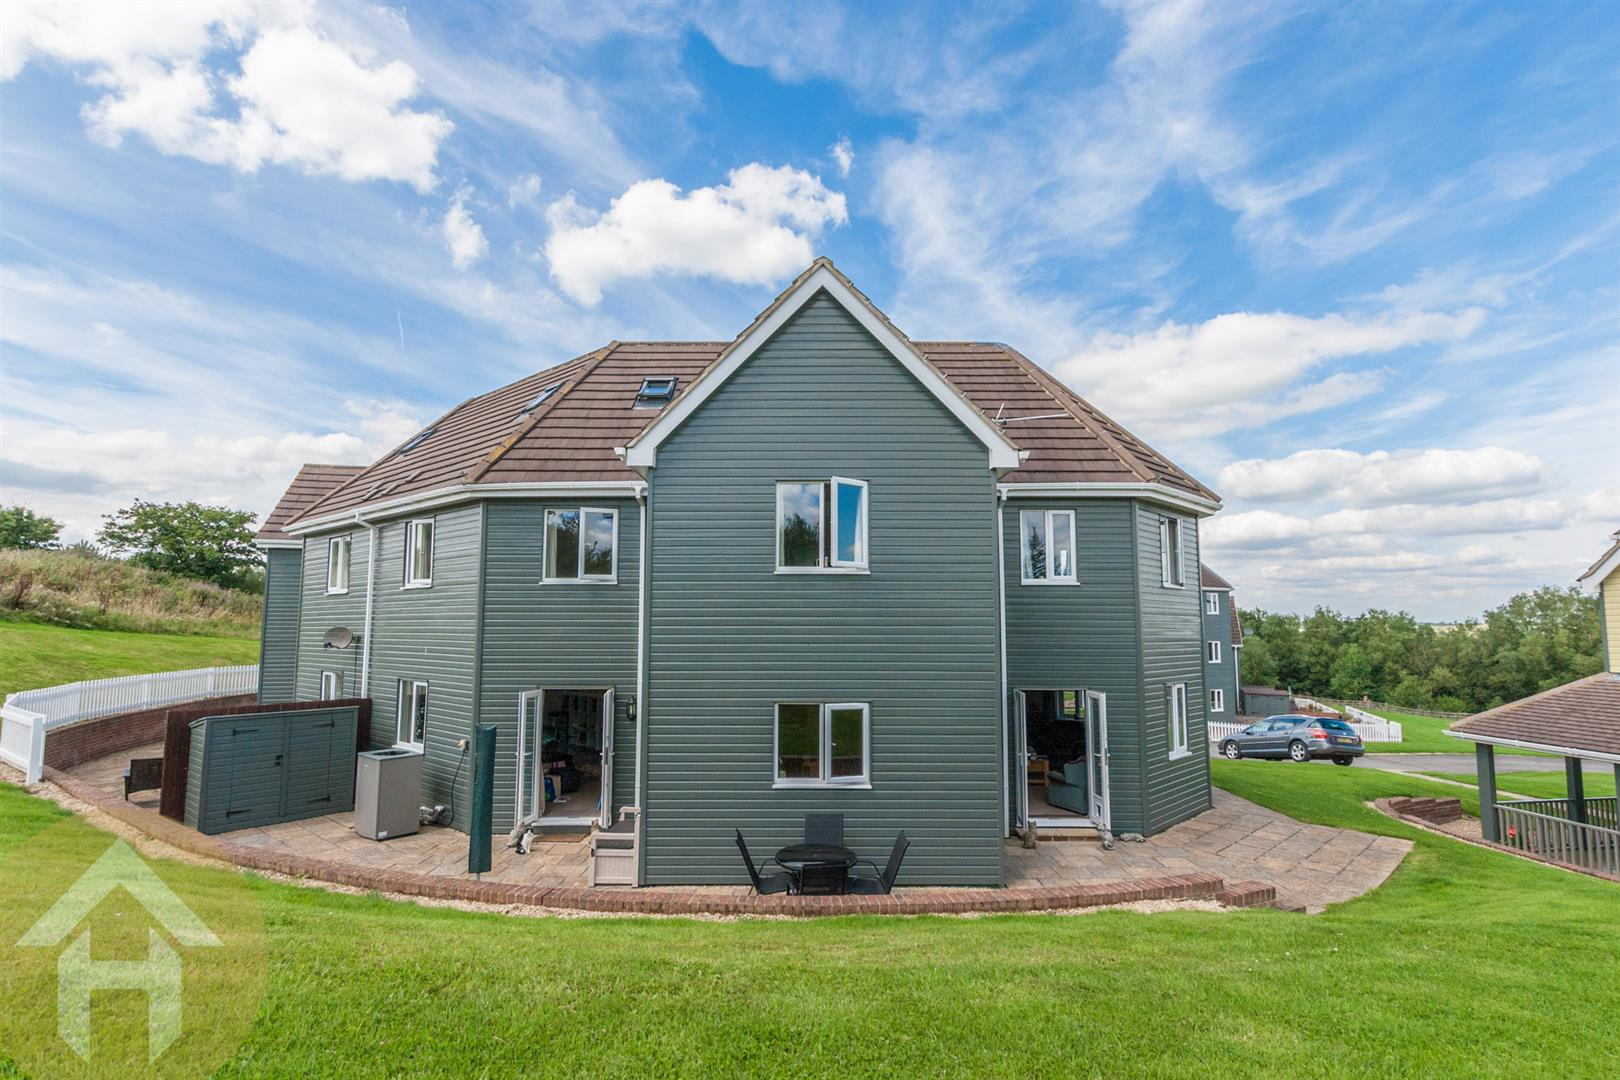 5 Bedrooms Semi Detached House for sale in The Wiltshire Leisure Village, Nr Royal Wootton Bassett